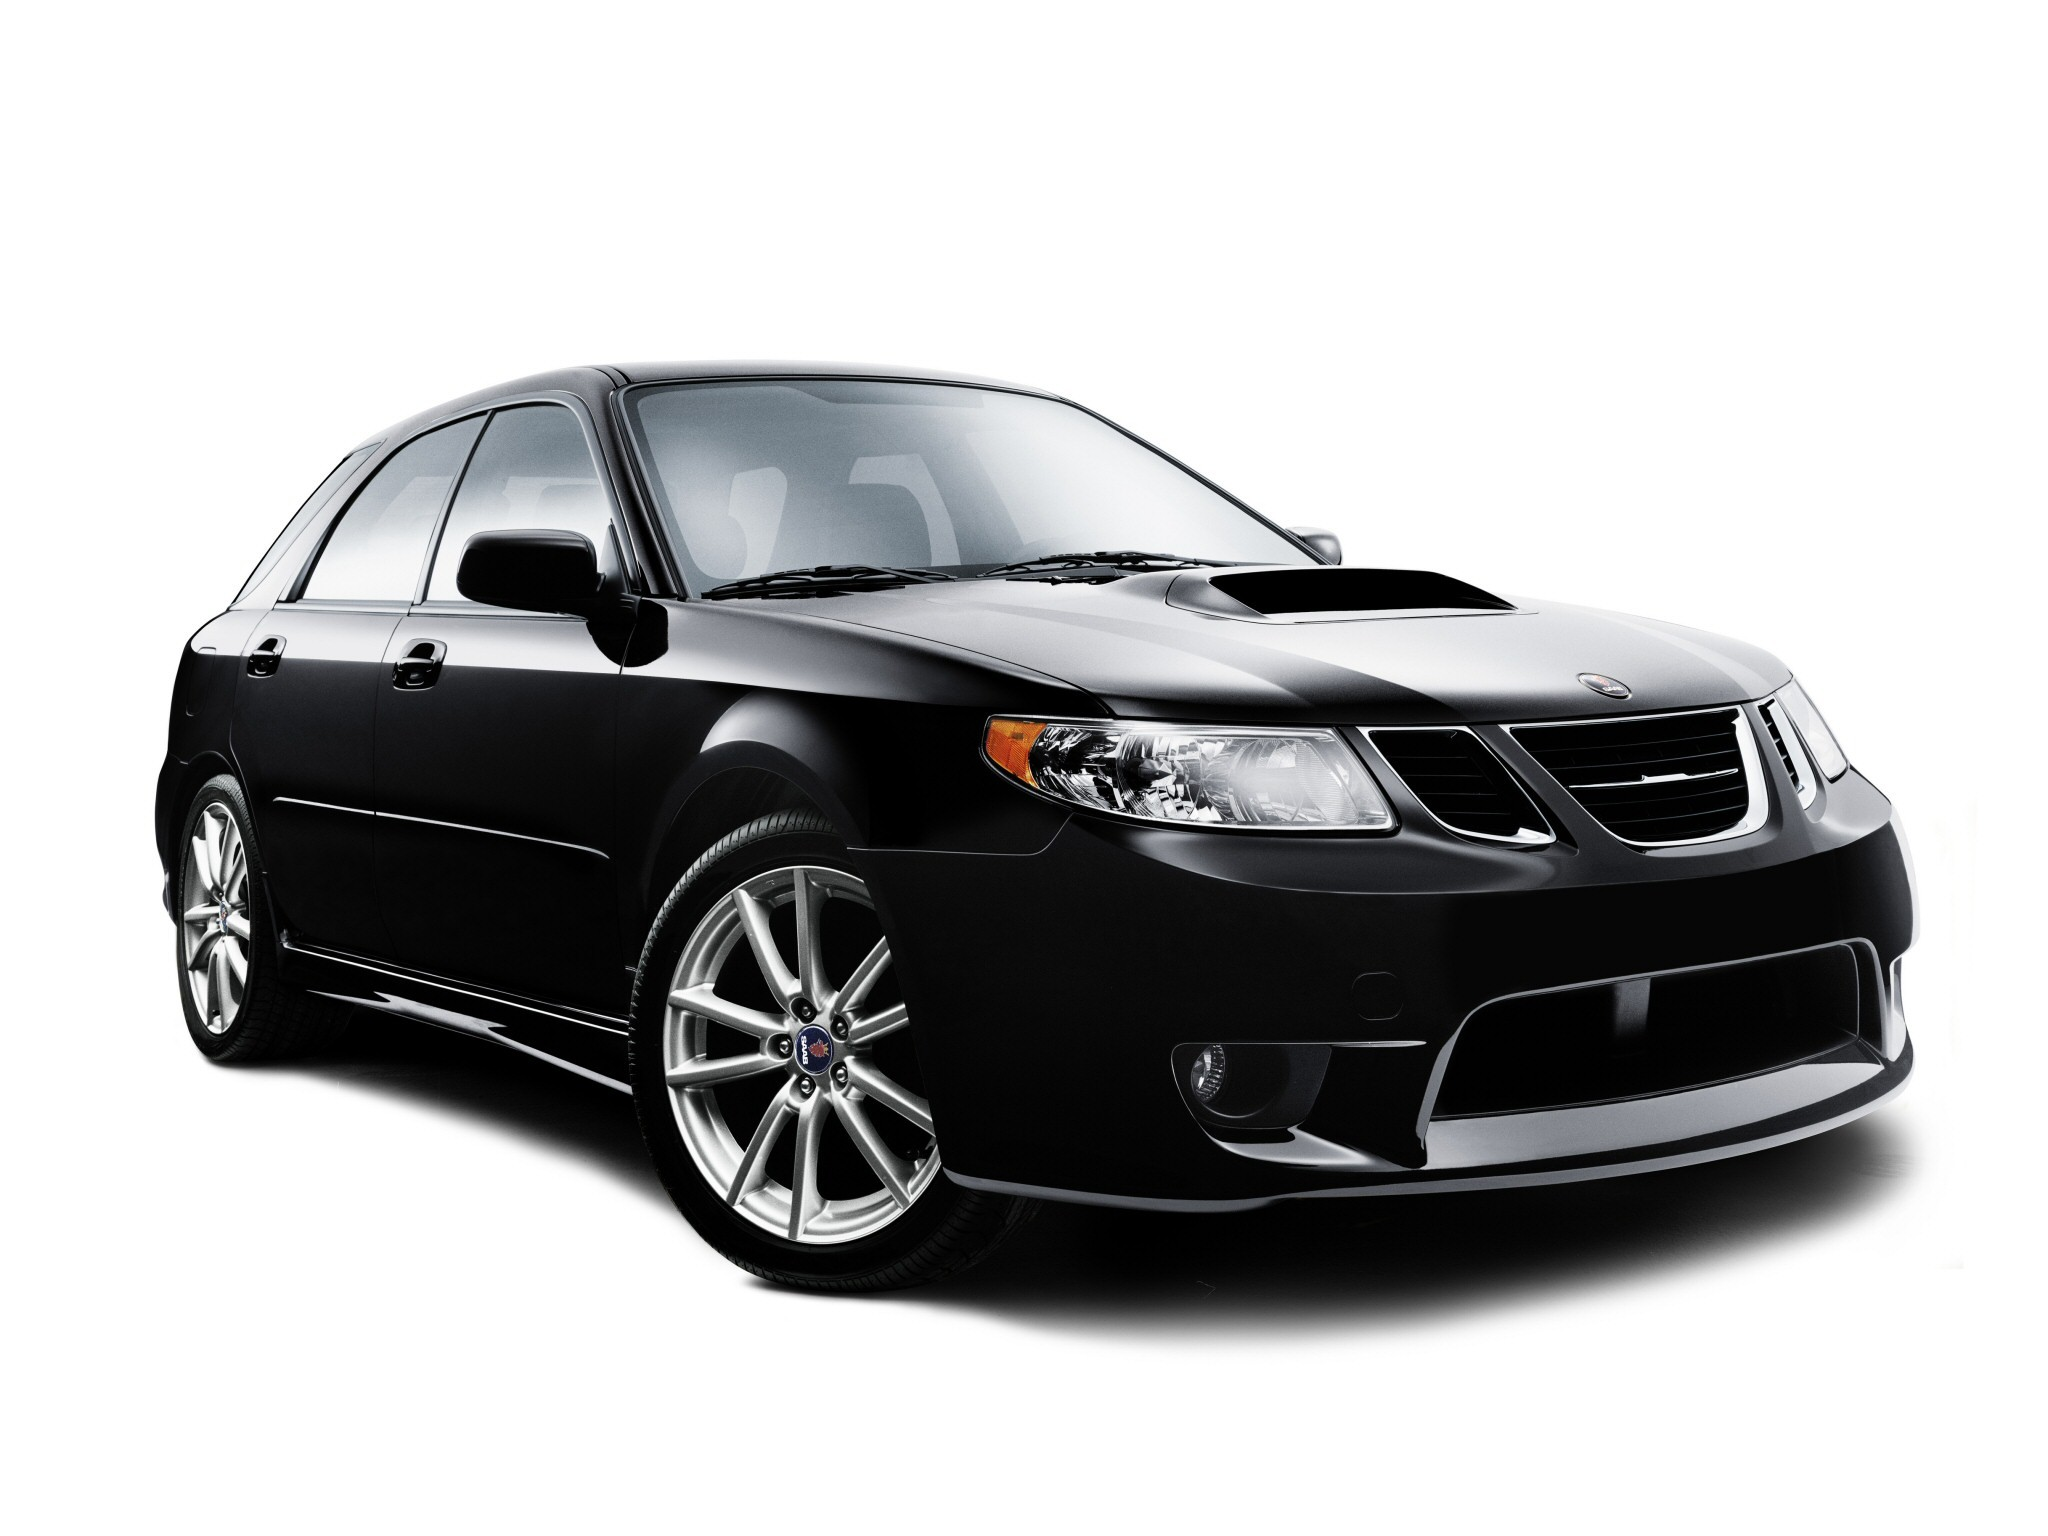 saab 9 2x specs 2004 2005 2006 autoevolution. Black Bedroom Furniture Sets. Home Design Ideas